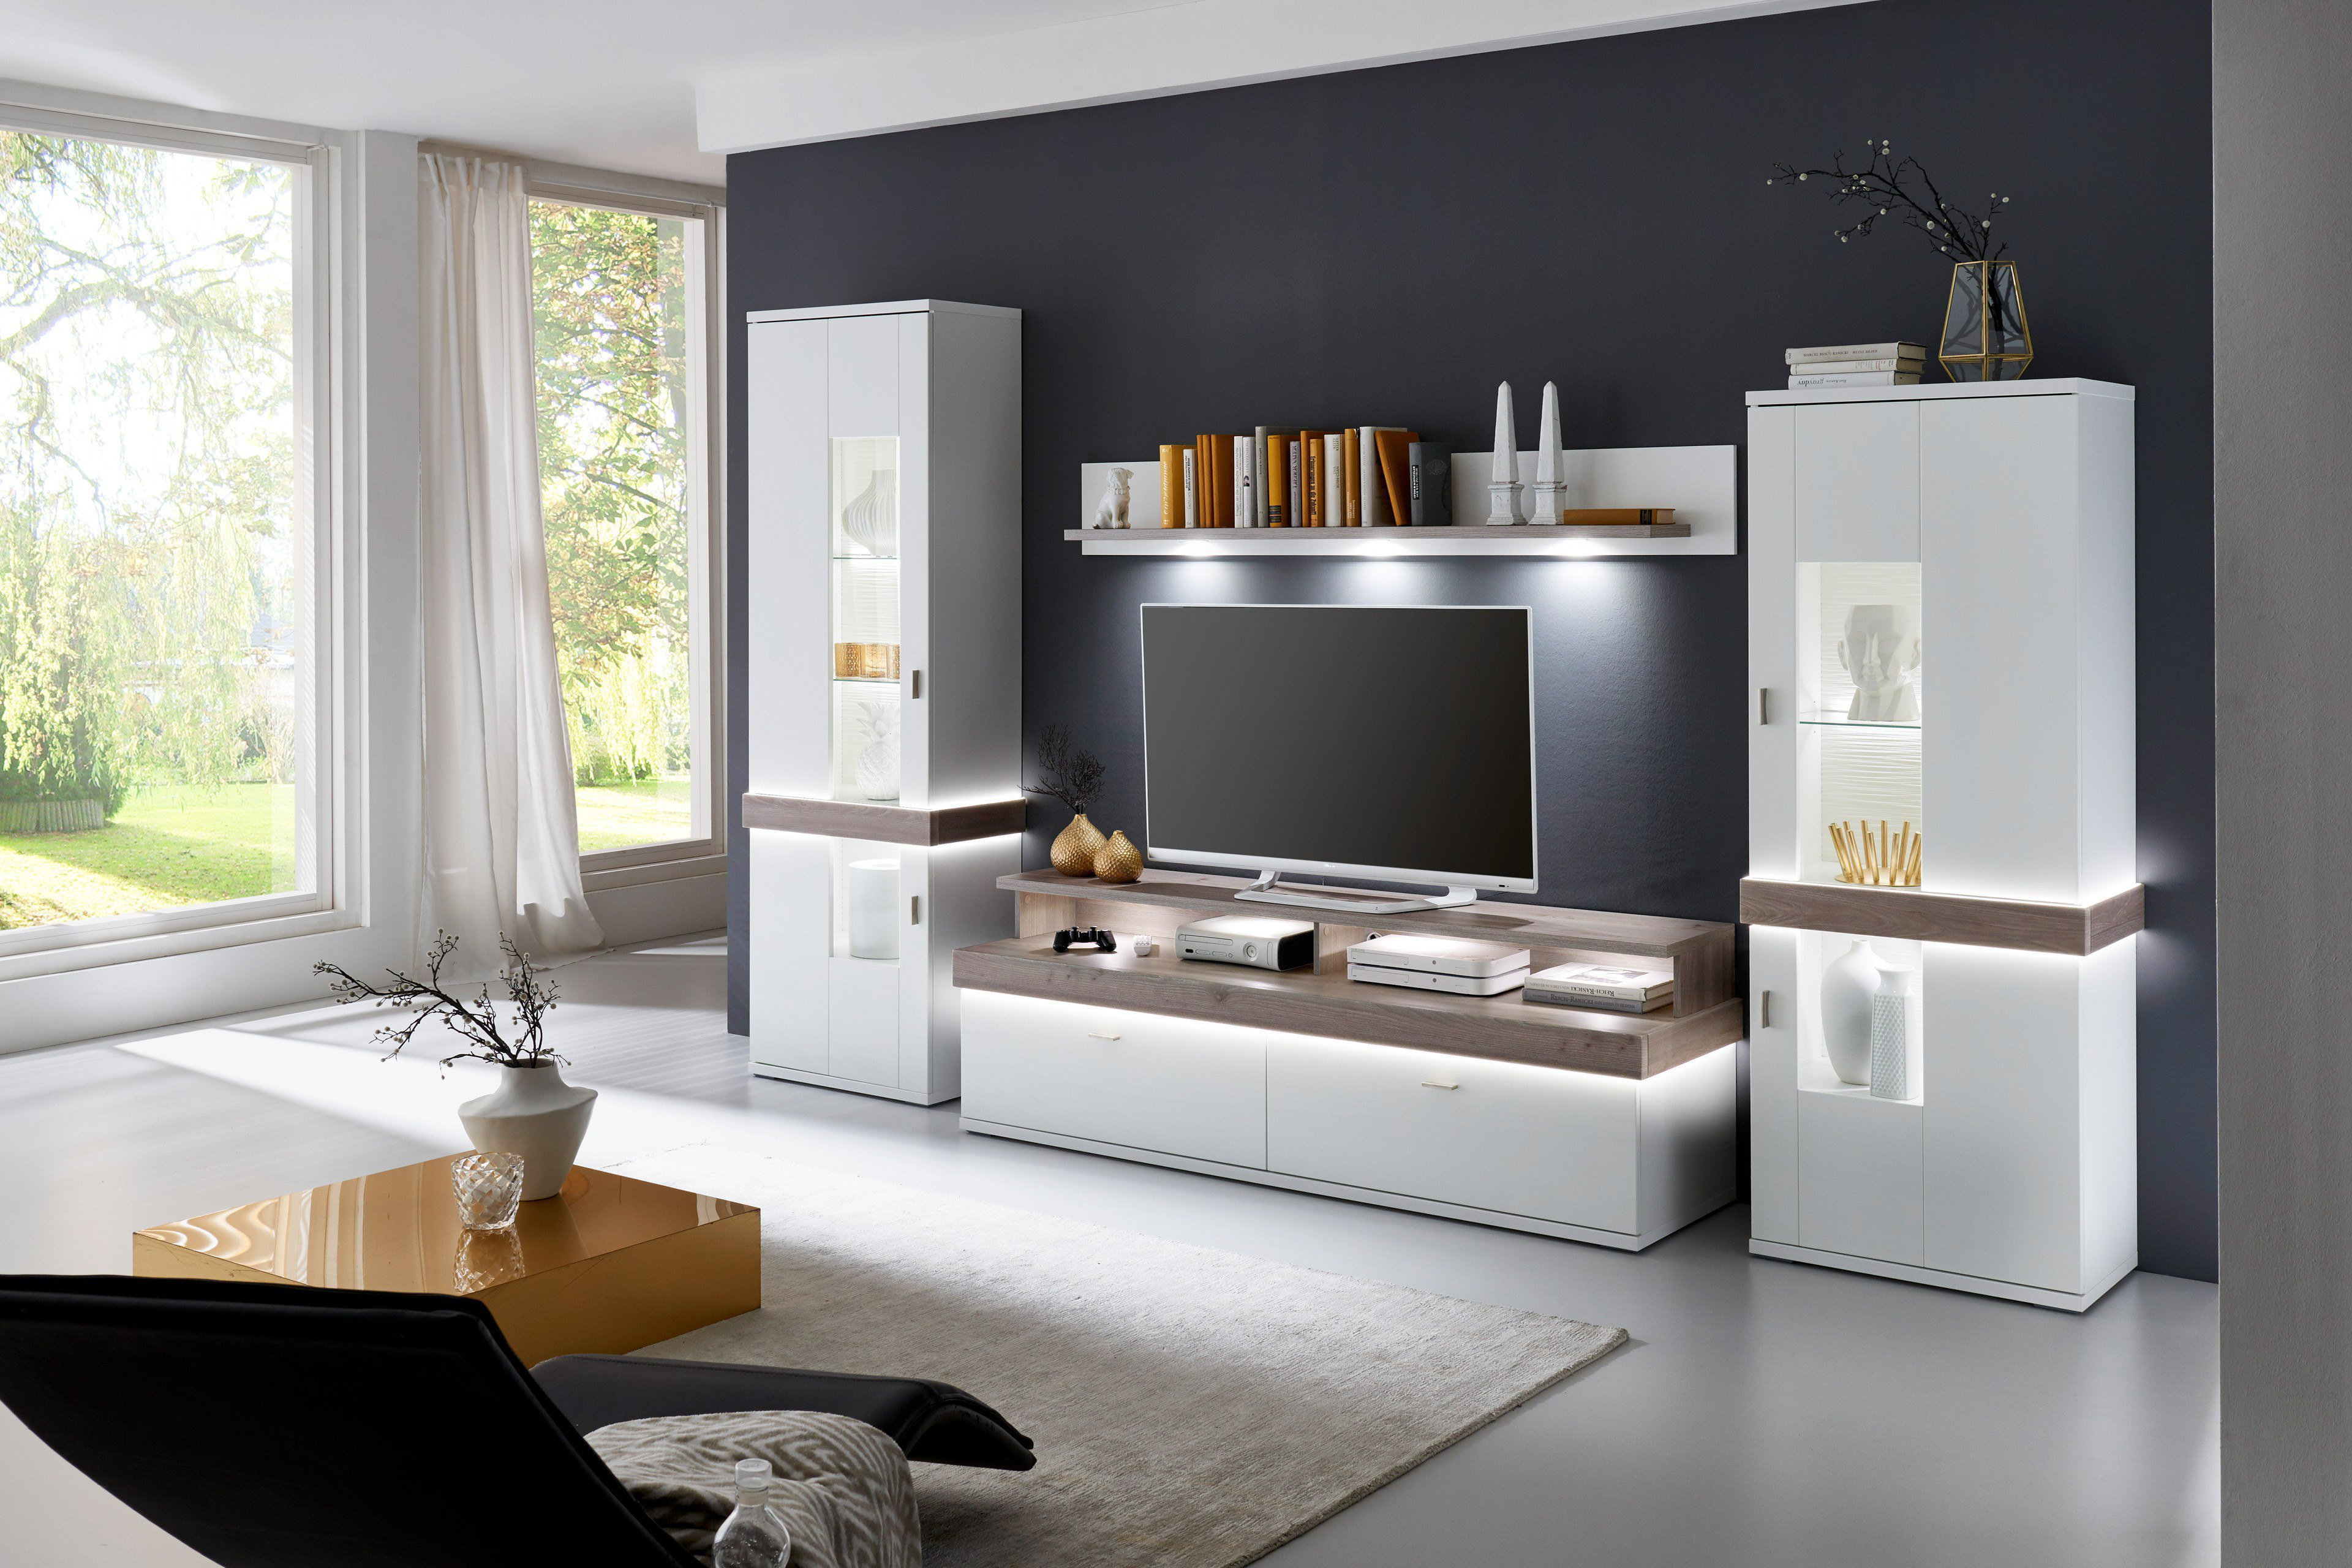 ideal m bel wohnwand albi wei nelson nordic m bel letz ihr online shop. Black Bedroom Furniture Sets. Home Design Ideas